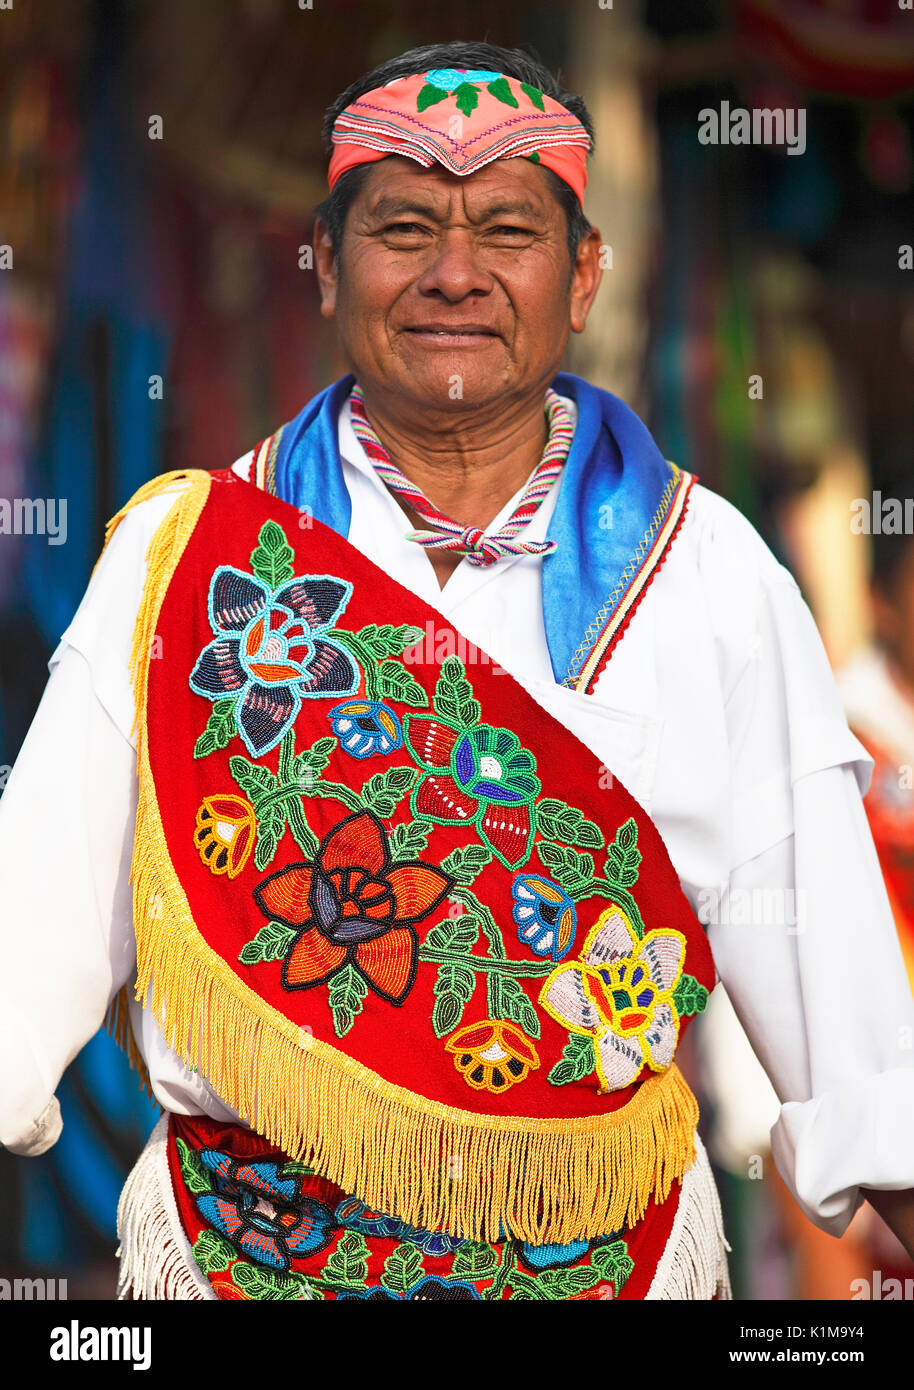 Man, 60 years old, in traditional costume, Voladores de Papantla, Xochimilco, State of Mexico, Mexico - Stock Image